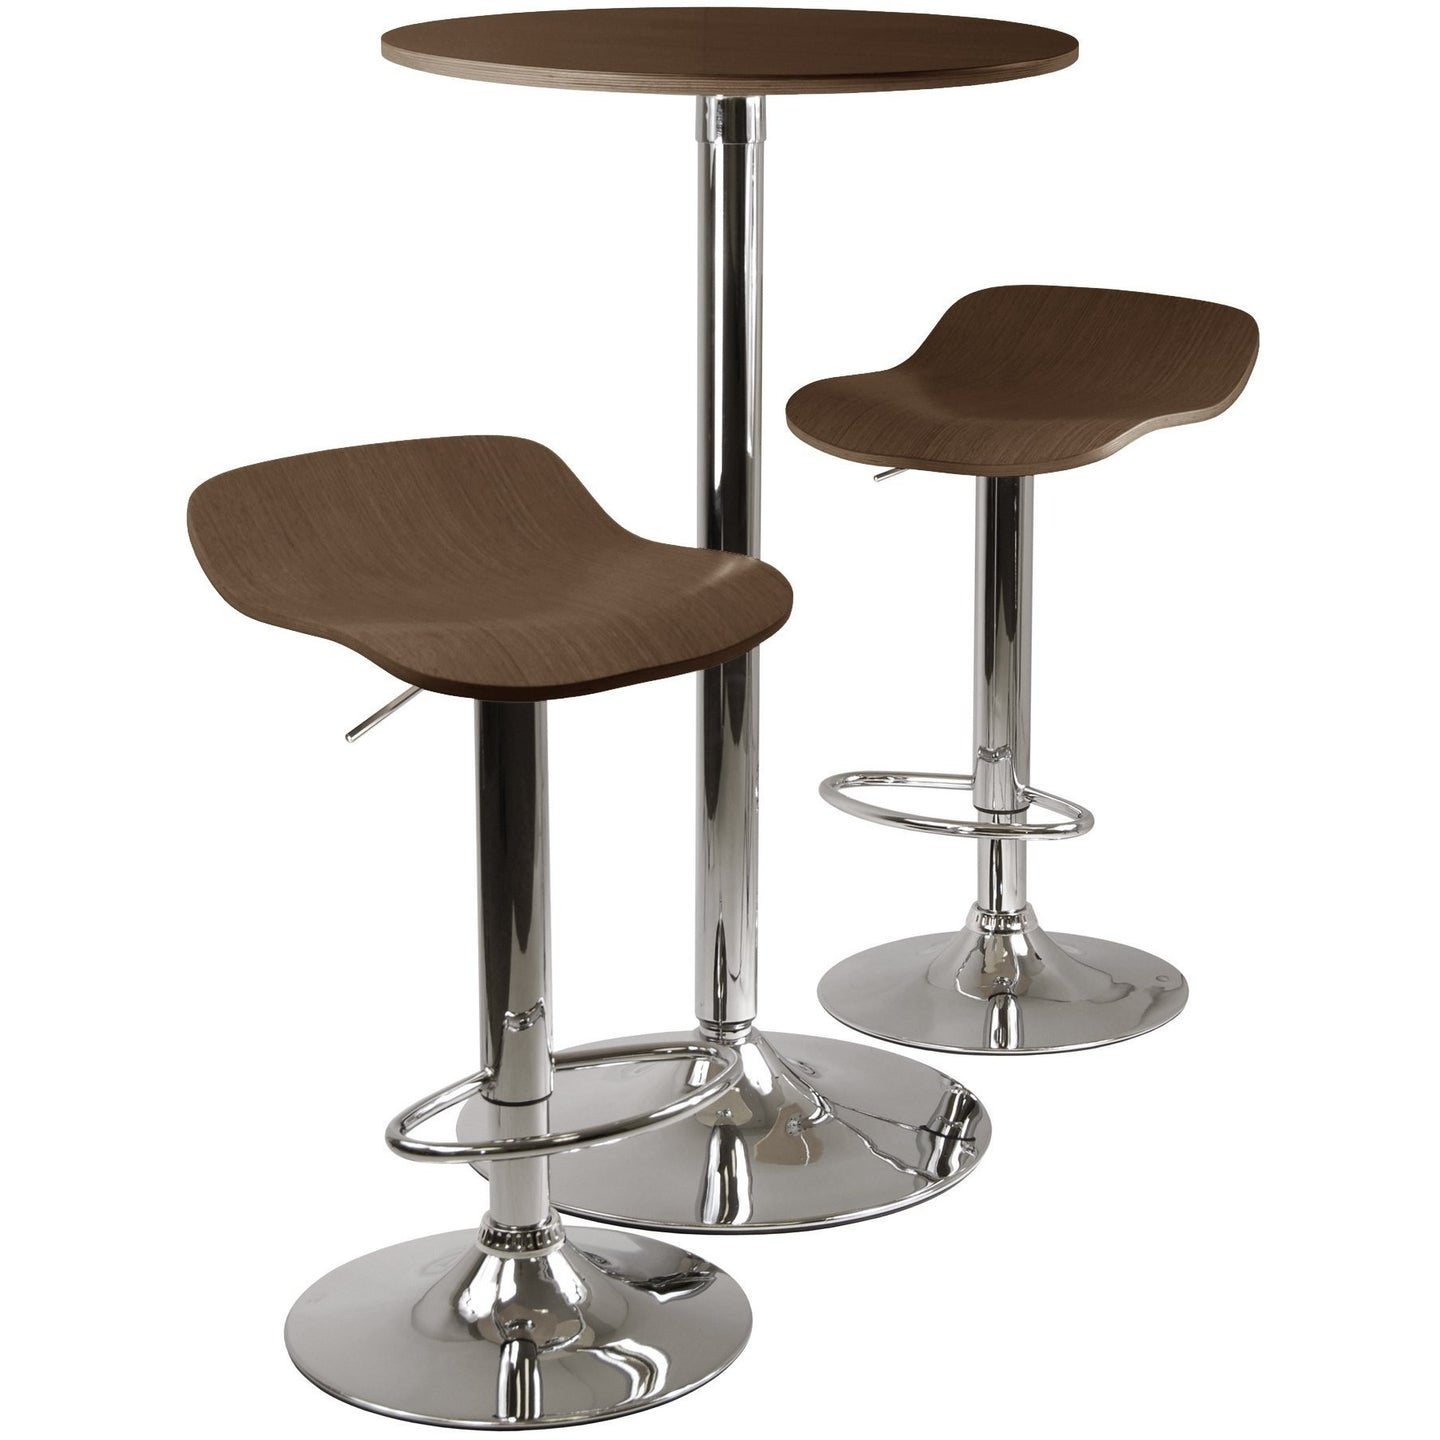 KALLIE 3-PC Pub Table and two barstools Set Capuccino/Chrome - barsforhomes.com